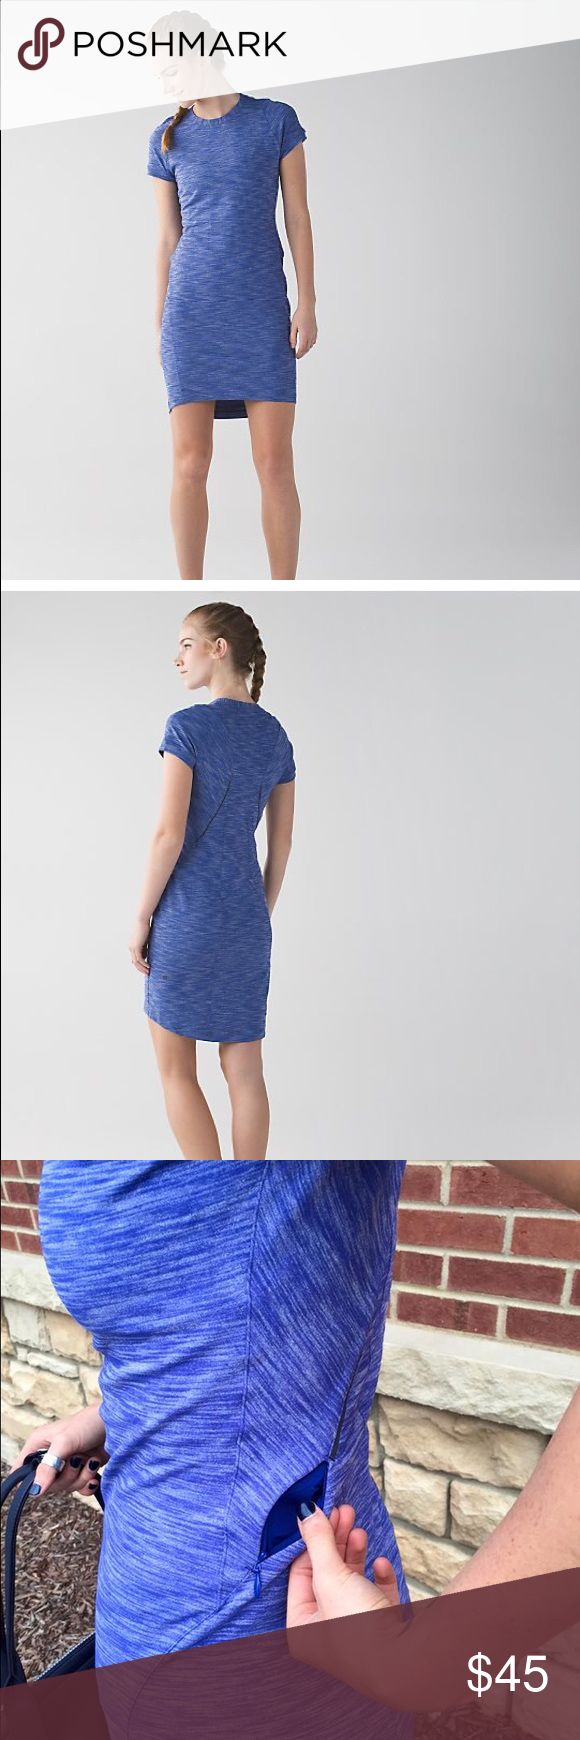 Lululemon &go where to dress Sz 8 sapphire blue Super cute and comfy sold out Lululemon dress! Adore the dress just too big for me now.                                                                            When you've got five minutes to get ready for a surprise weekend away, this slim-fitting dress will be the first thing you toss in your bag. It can take you from a day of exploring through to date night with four-way stretch fabric and pockets to stash all your must-haves. lululemon…